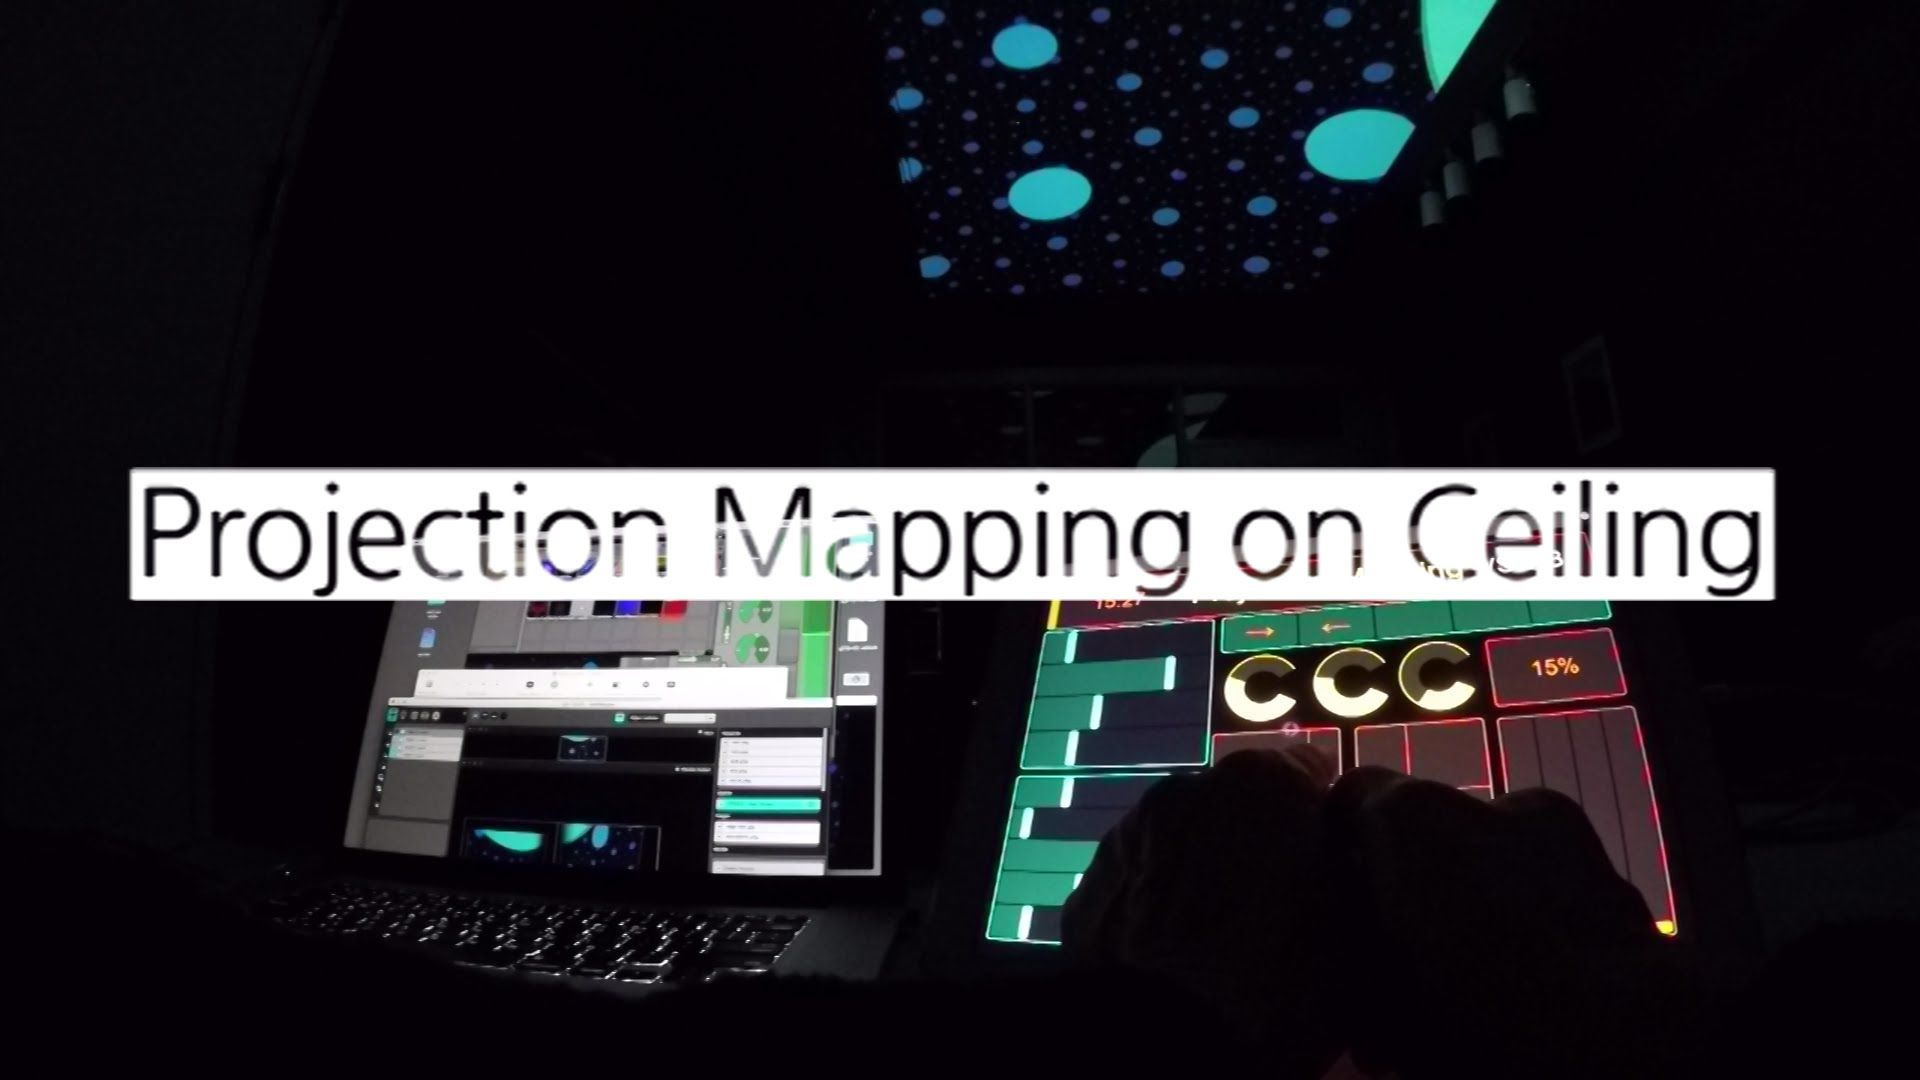 Projection Mapping on Ceiling